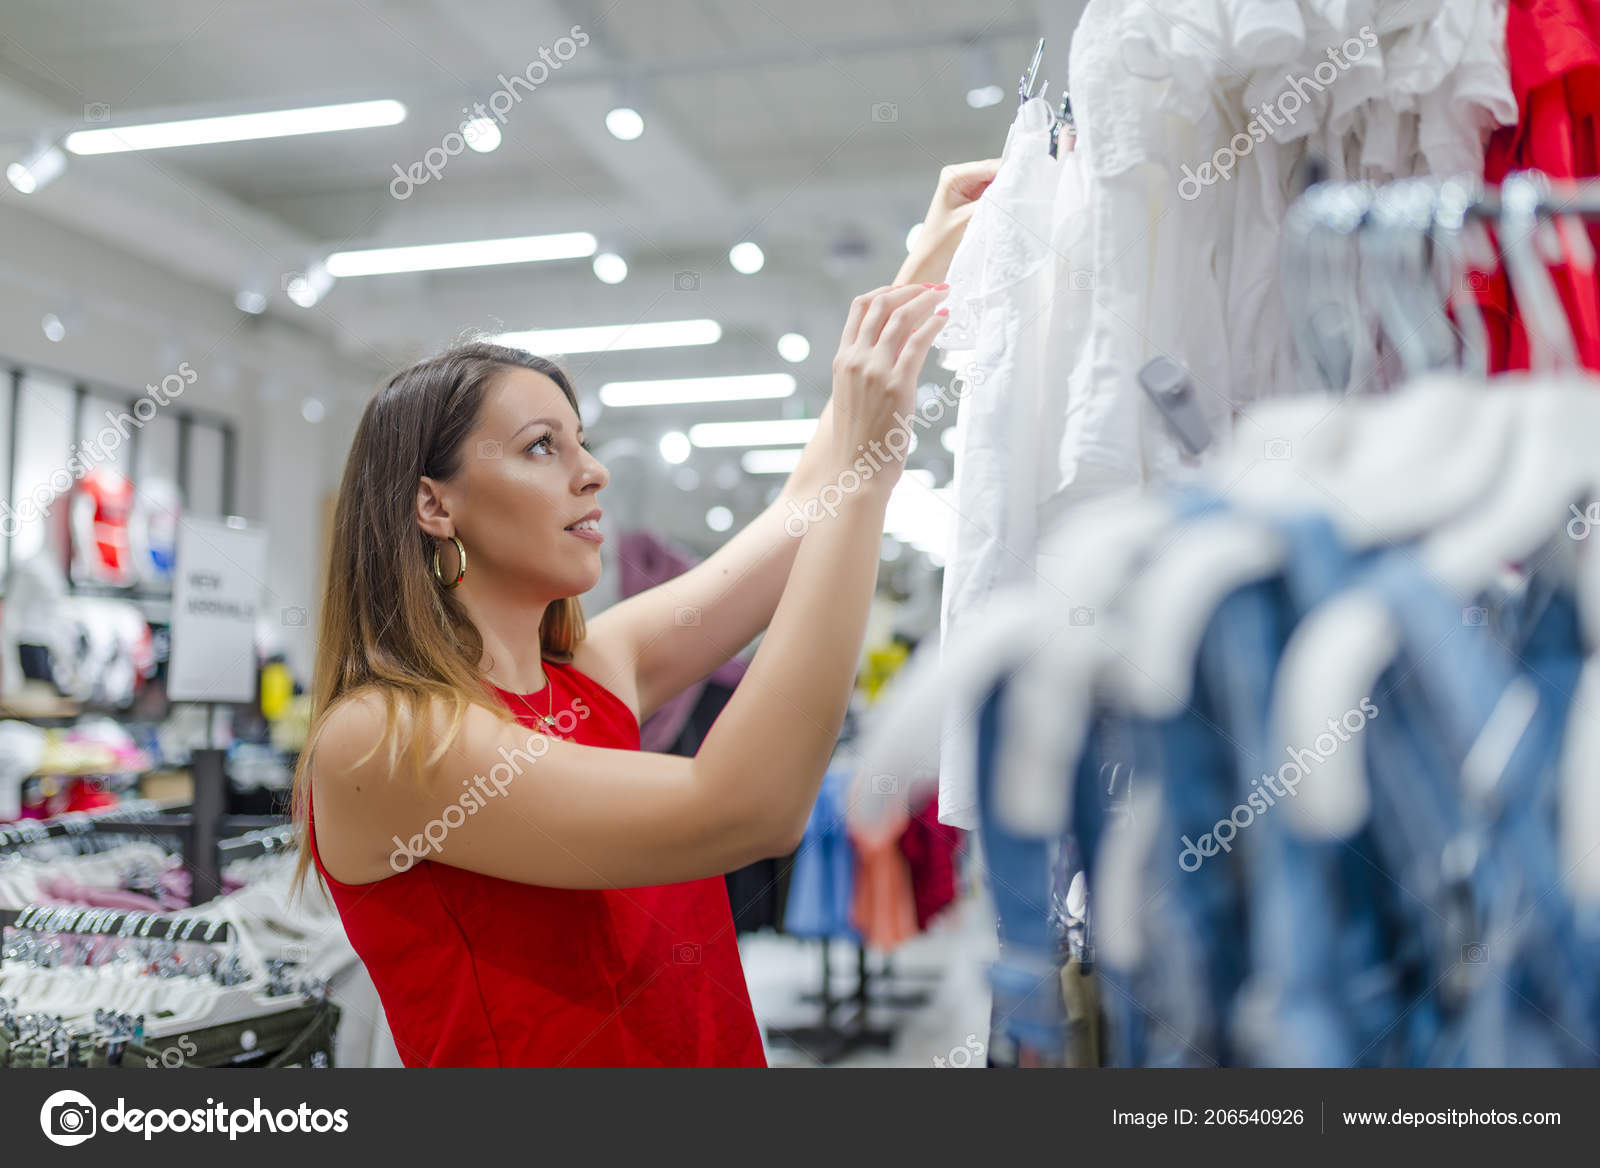 7b69a5f7a69 Half Body Shot of a Happy Young Woman with Shoulder Bag Looking at Clothes  Hanging on the Rail Inside the Clothing Shop. Woman shopper customer  choosing ...